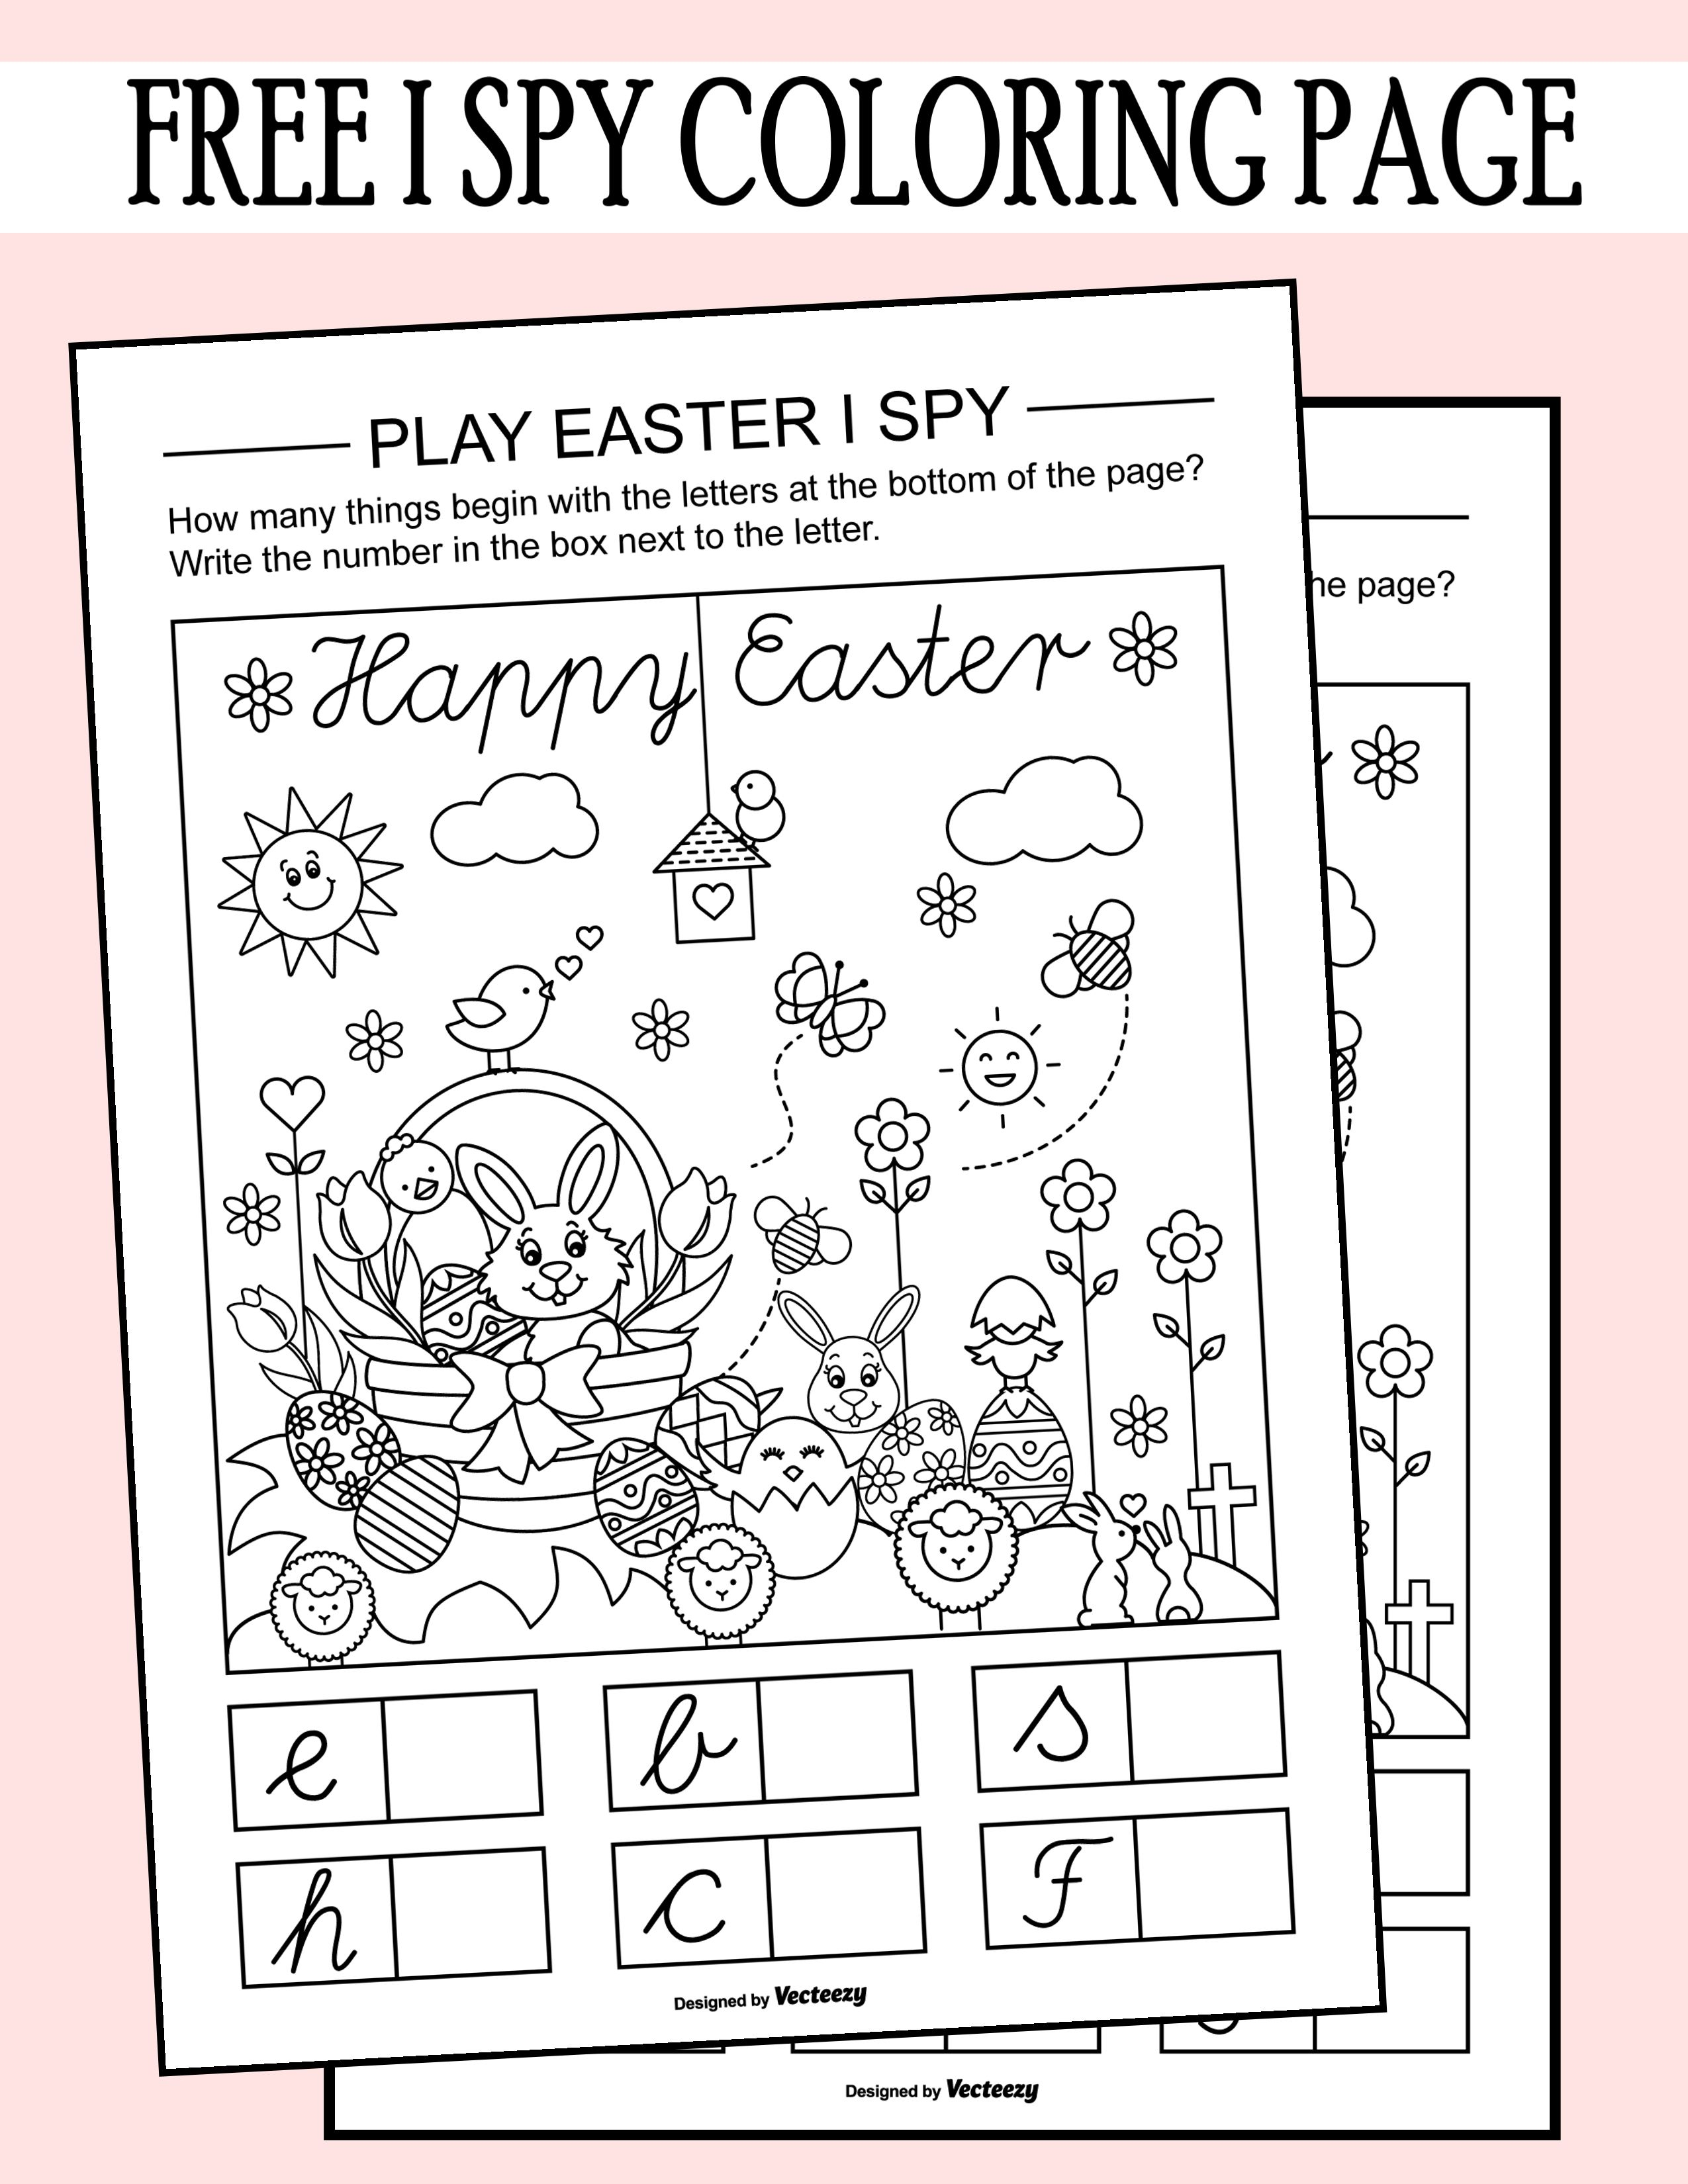 Easter I Spy Coloring Page Printable Worksheet - Printables 4 Mom    Coloring pages for kids [ 3300 x 2550 Pixel ]